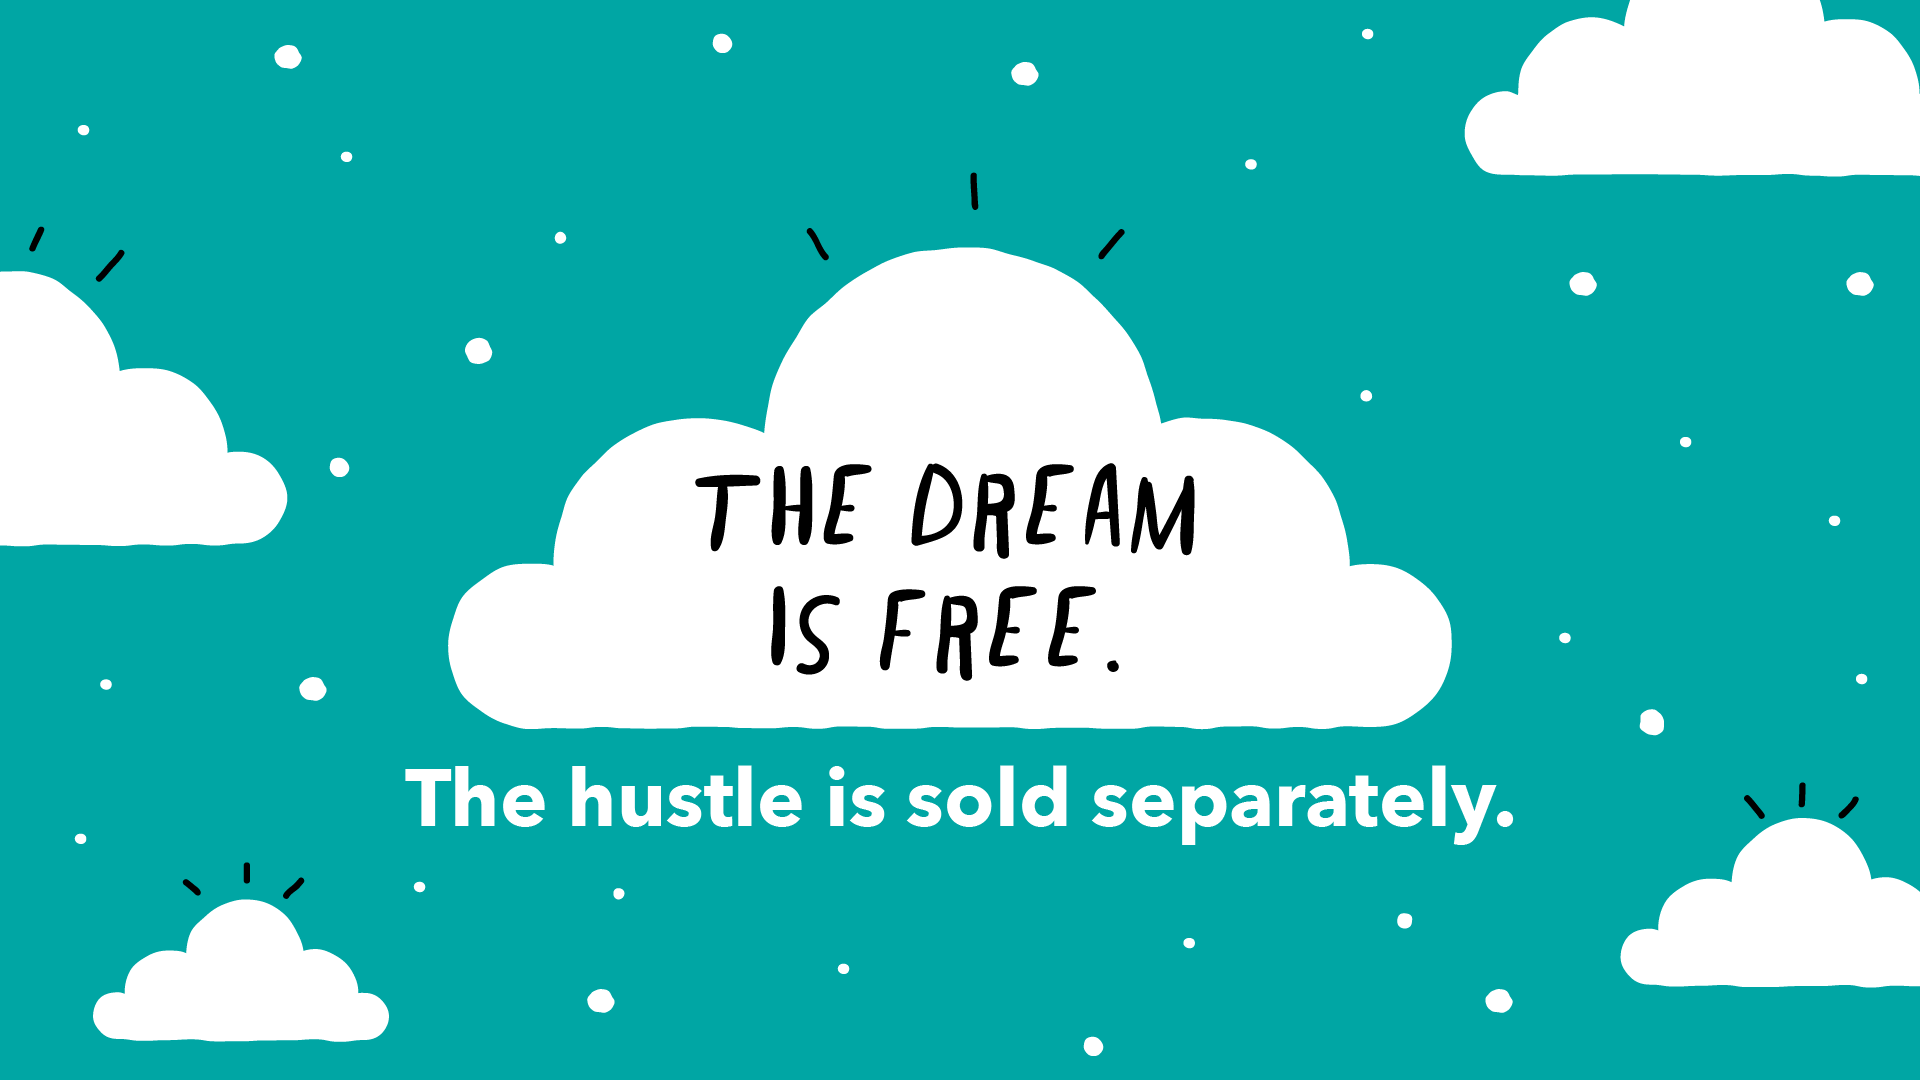 Business Inspirational Quotes Wallpaper Download Motivational Quote Wallpapers To Inspire Your Day